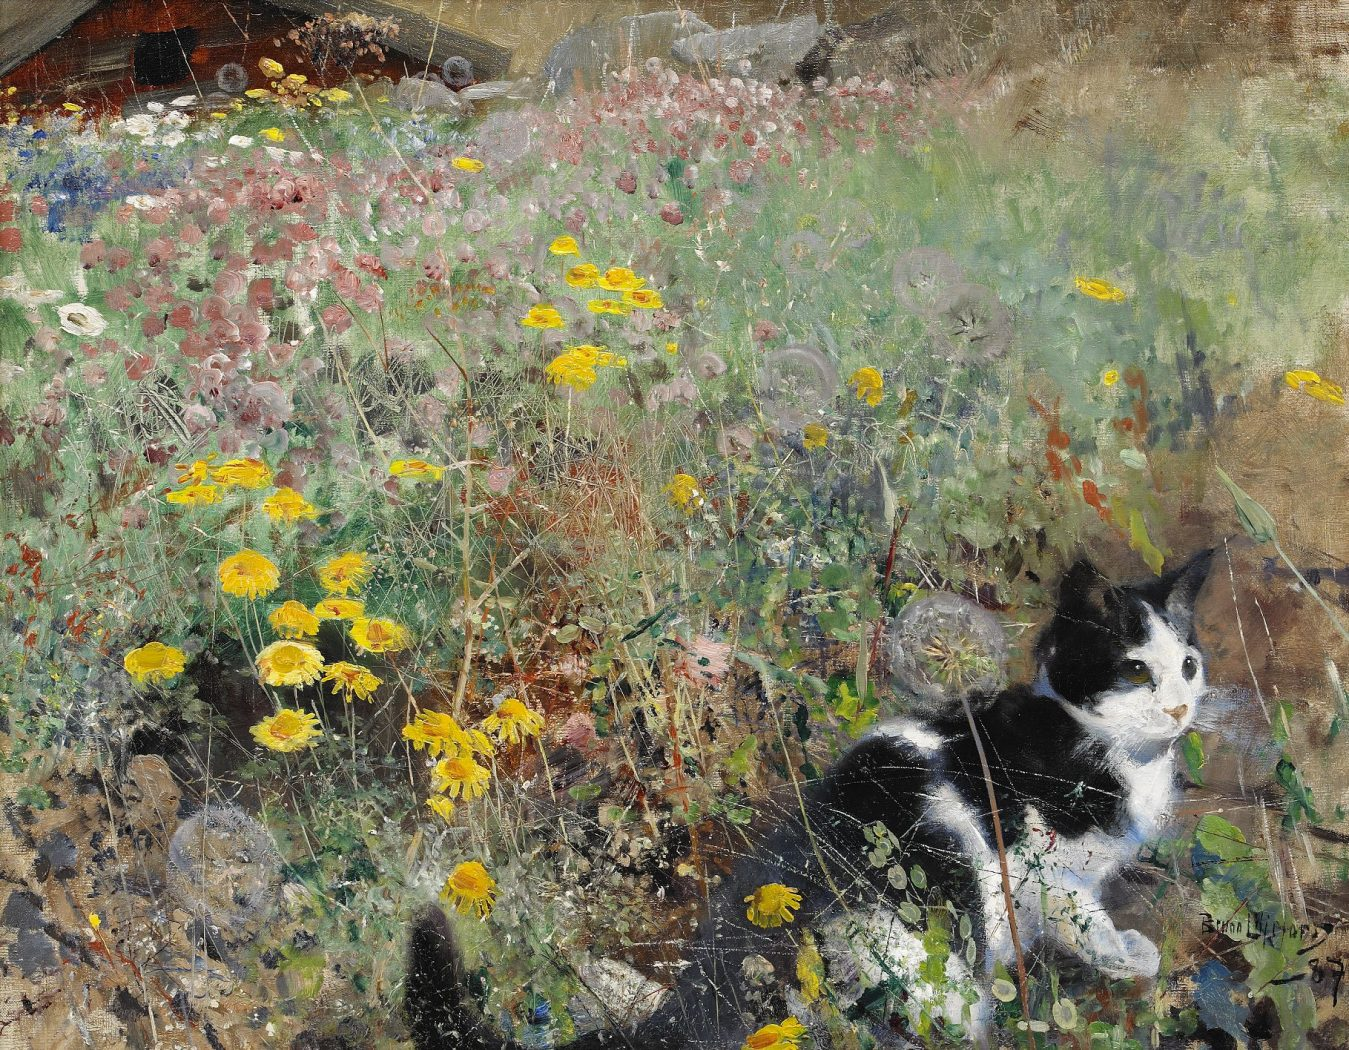 http://www.thegreatcat.org/wp-content/uploads/2013/09/Bruno-Liljefors-Cat-on-flowerbed-1887-wiki.jpg